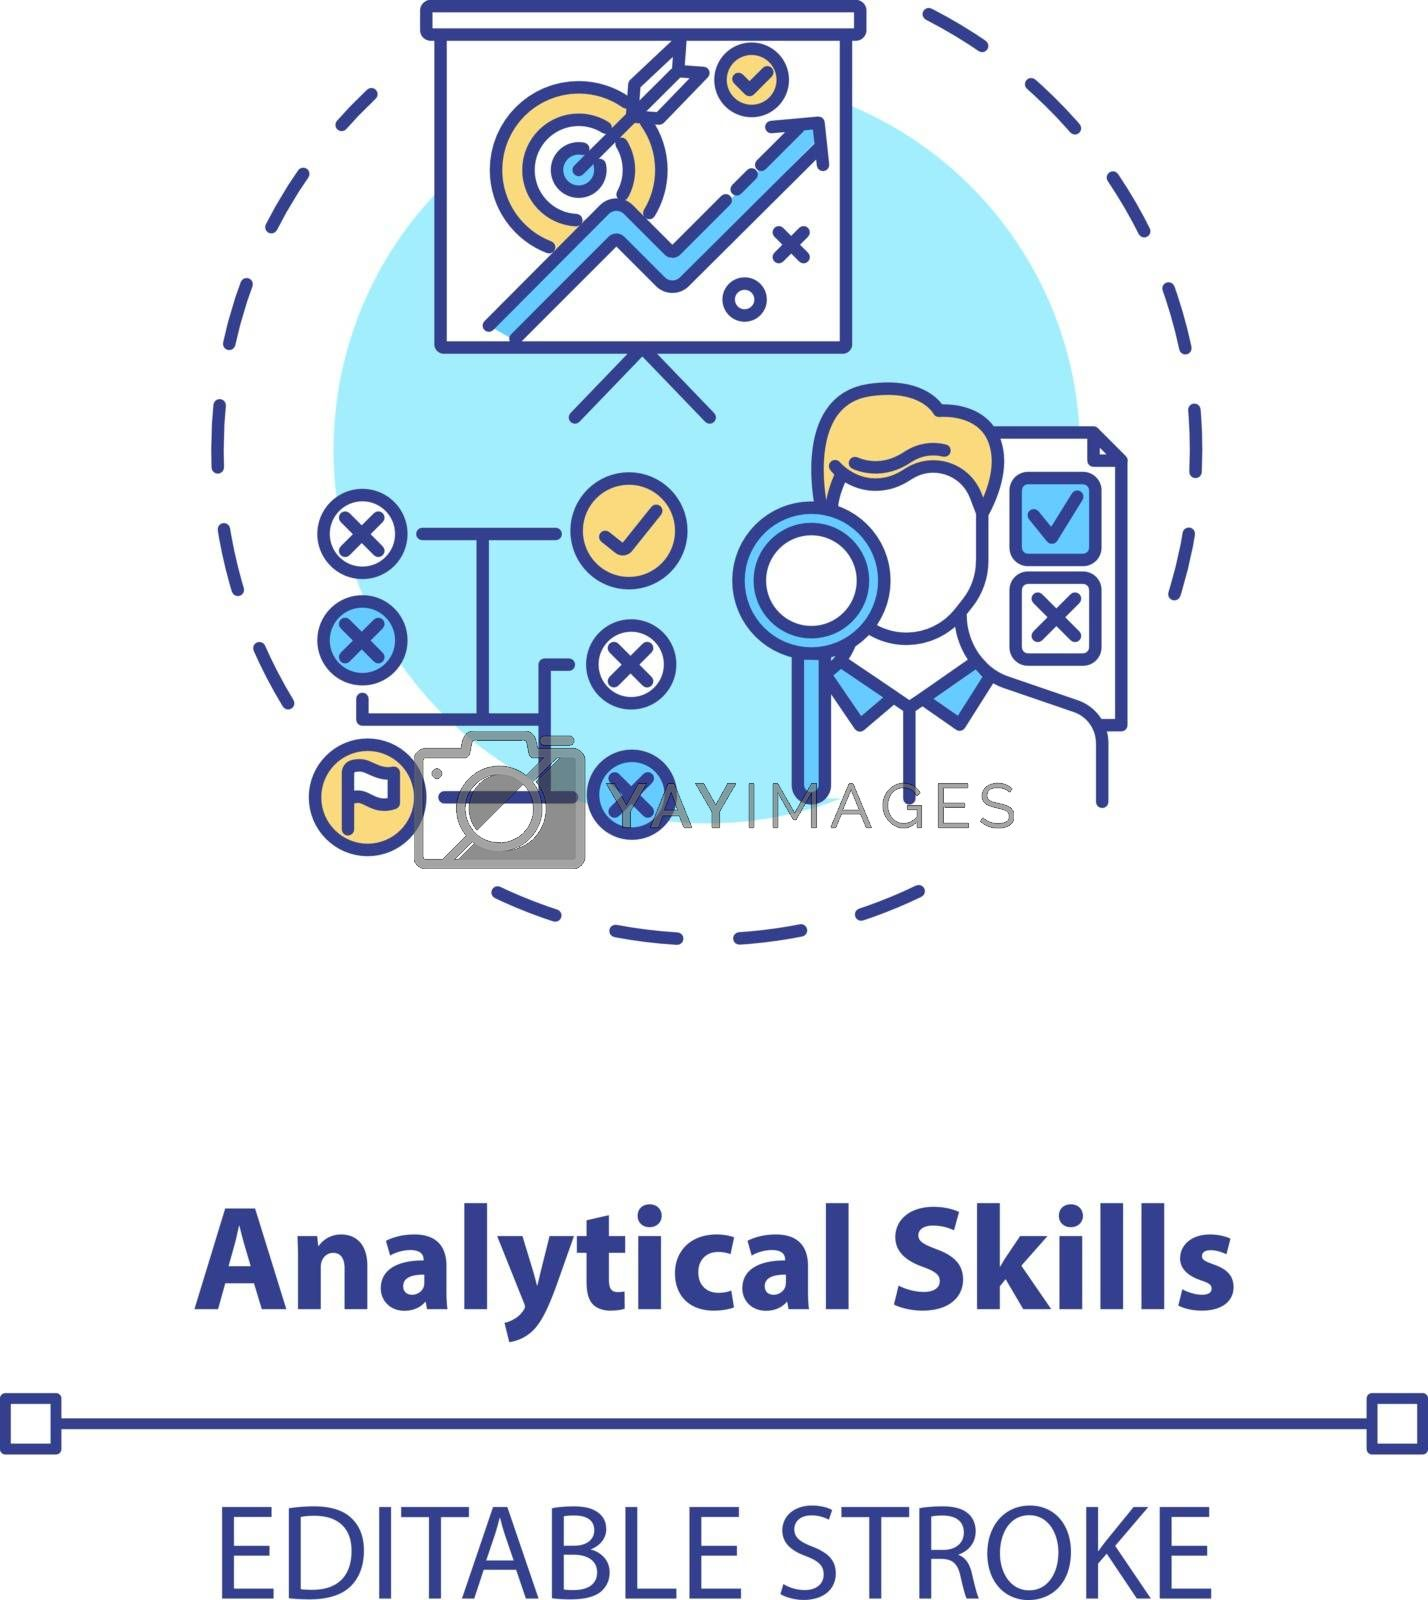 Analytical skill concept icon by bsd